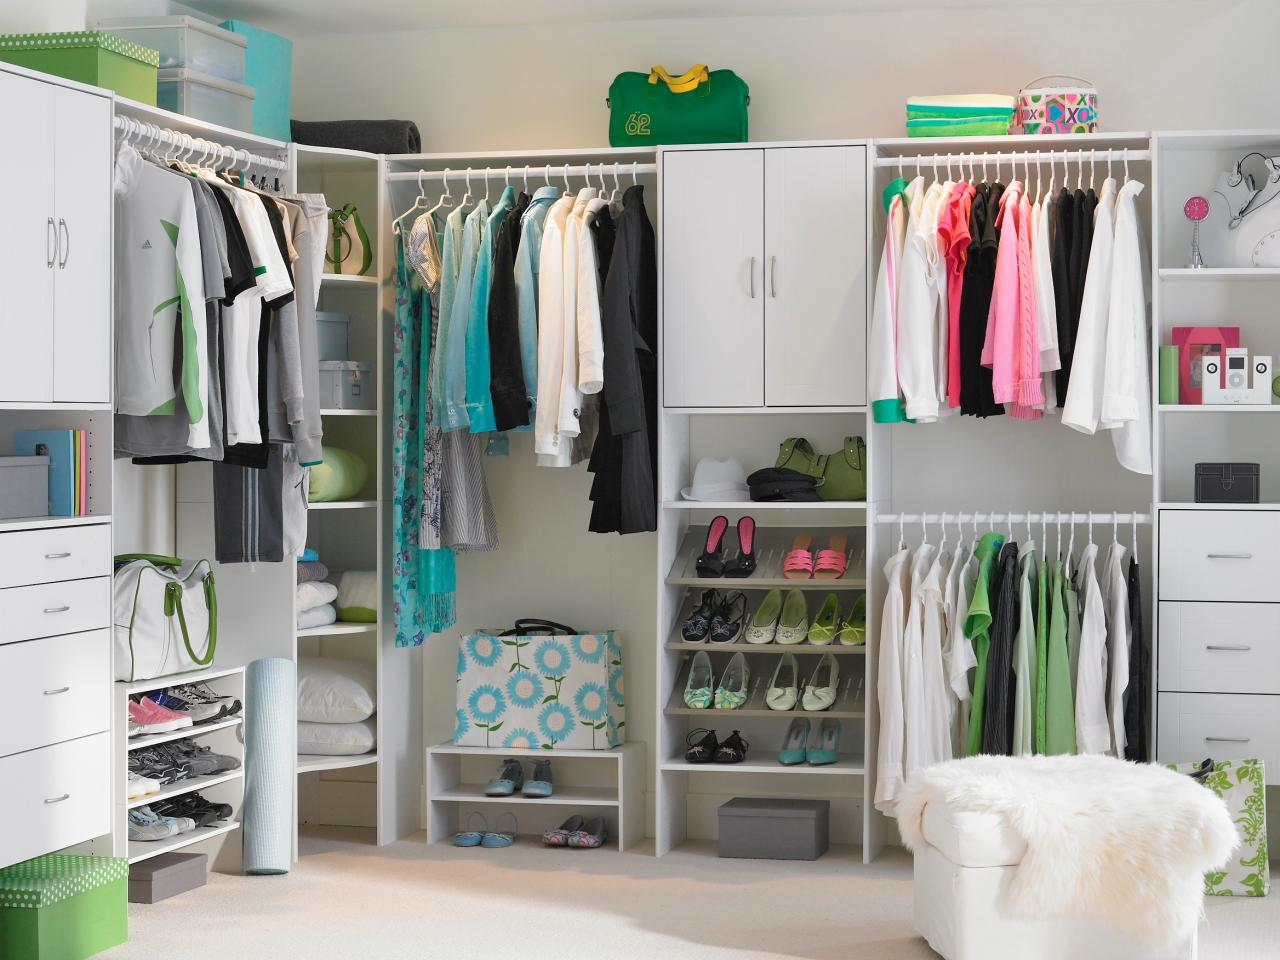 Master Closet Design Ideas HGTV - Master bedroom closet organization ideas